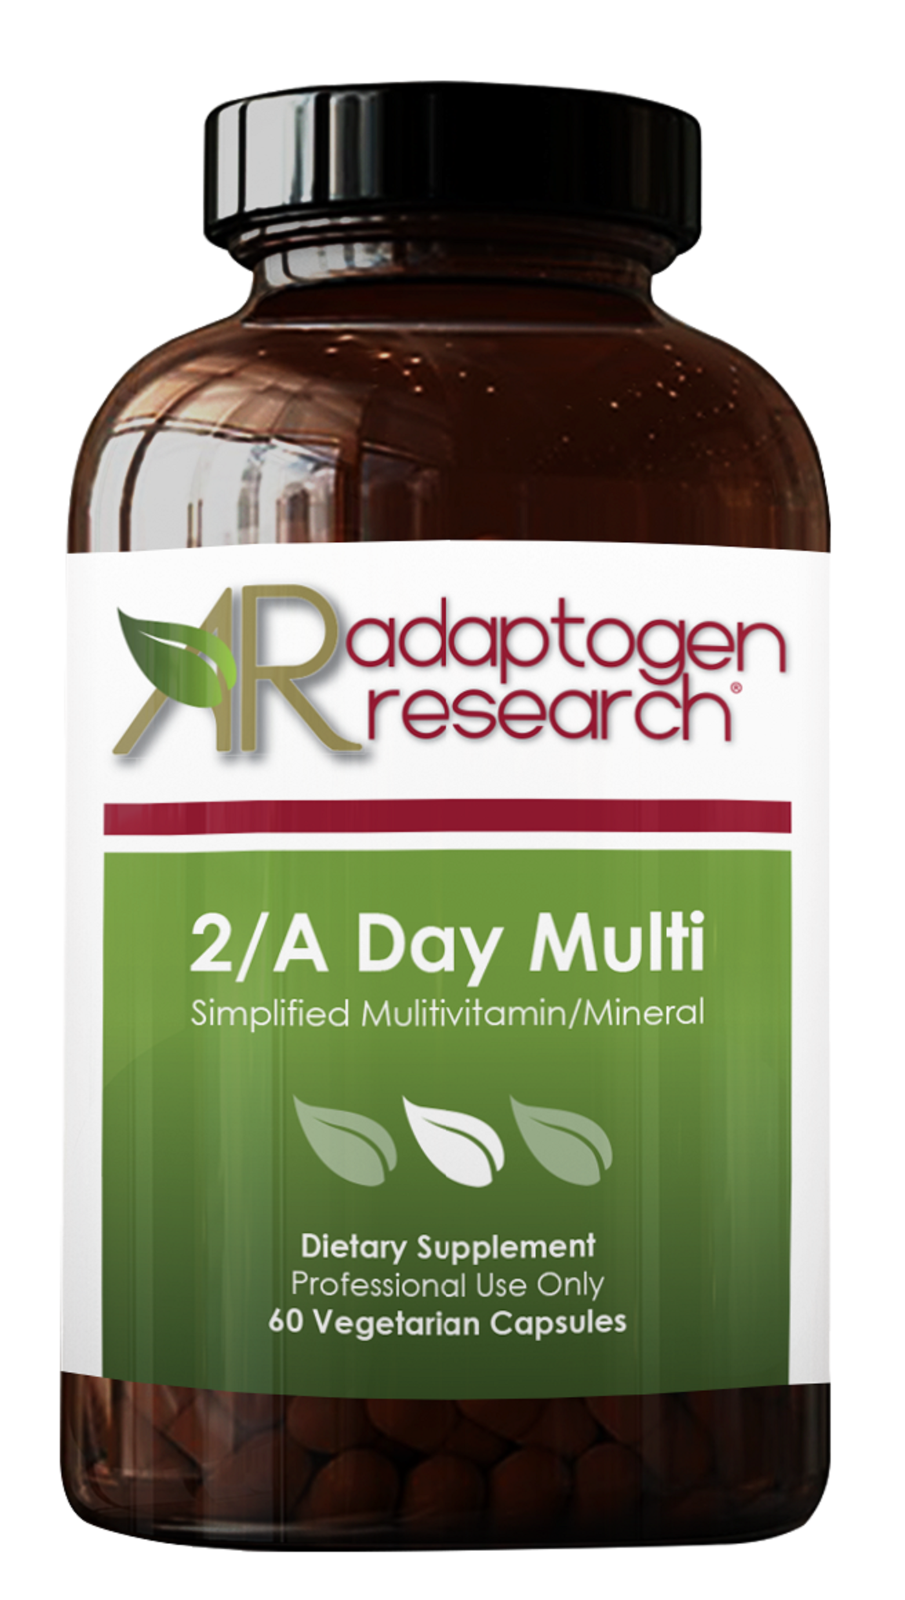 2/A Day Multi Multivitamin Supplement twice daily formula 60VCaps